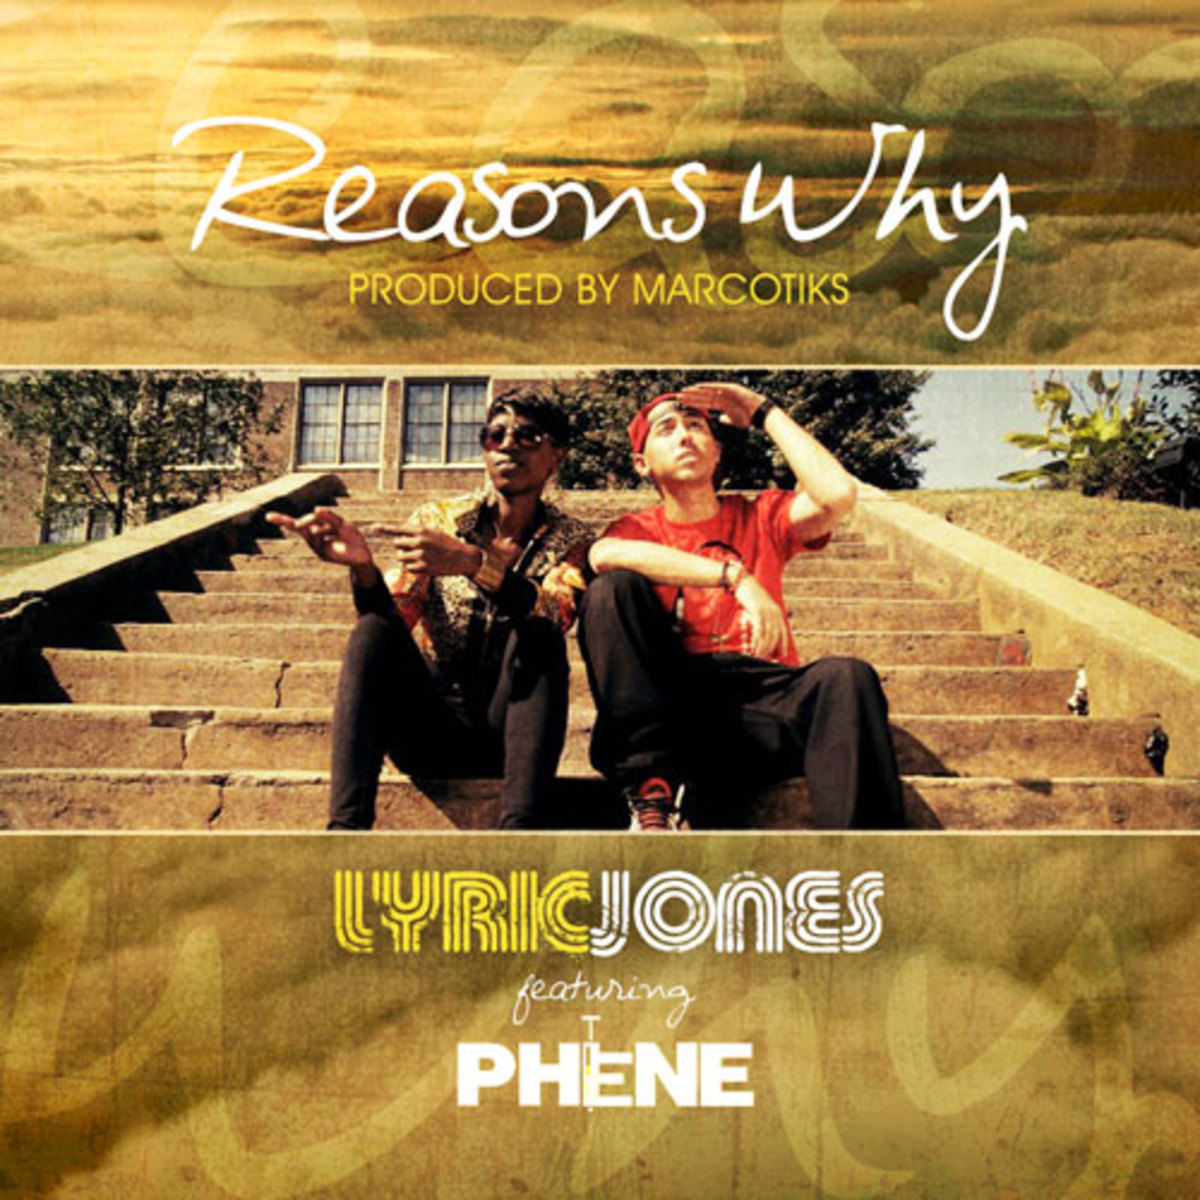 lyricjones-reasonswhy.jpg